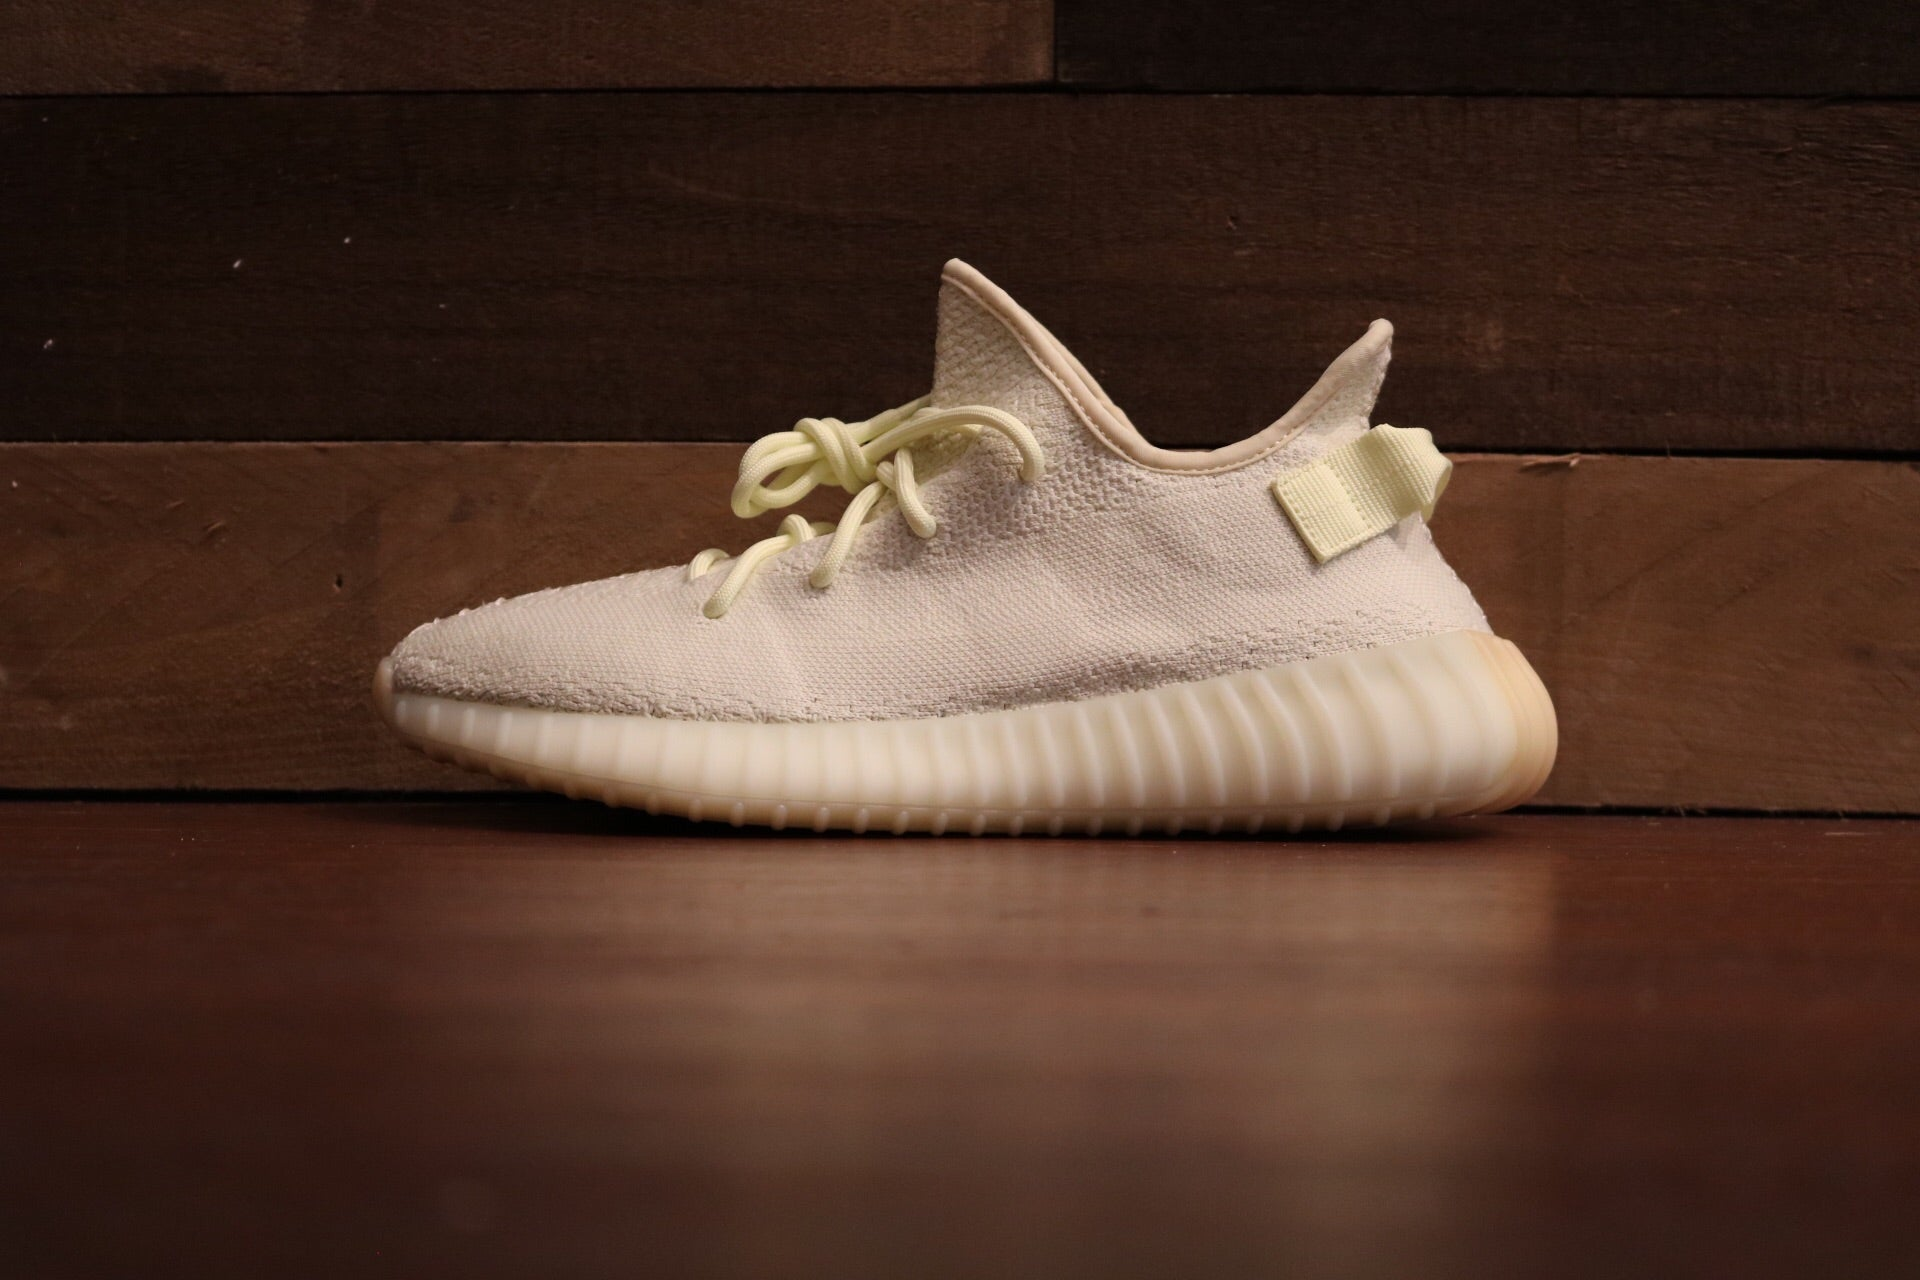 29c0a31f42db7 Adidas Yeezy Boost 350 V2 Butter